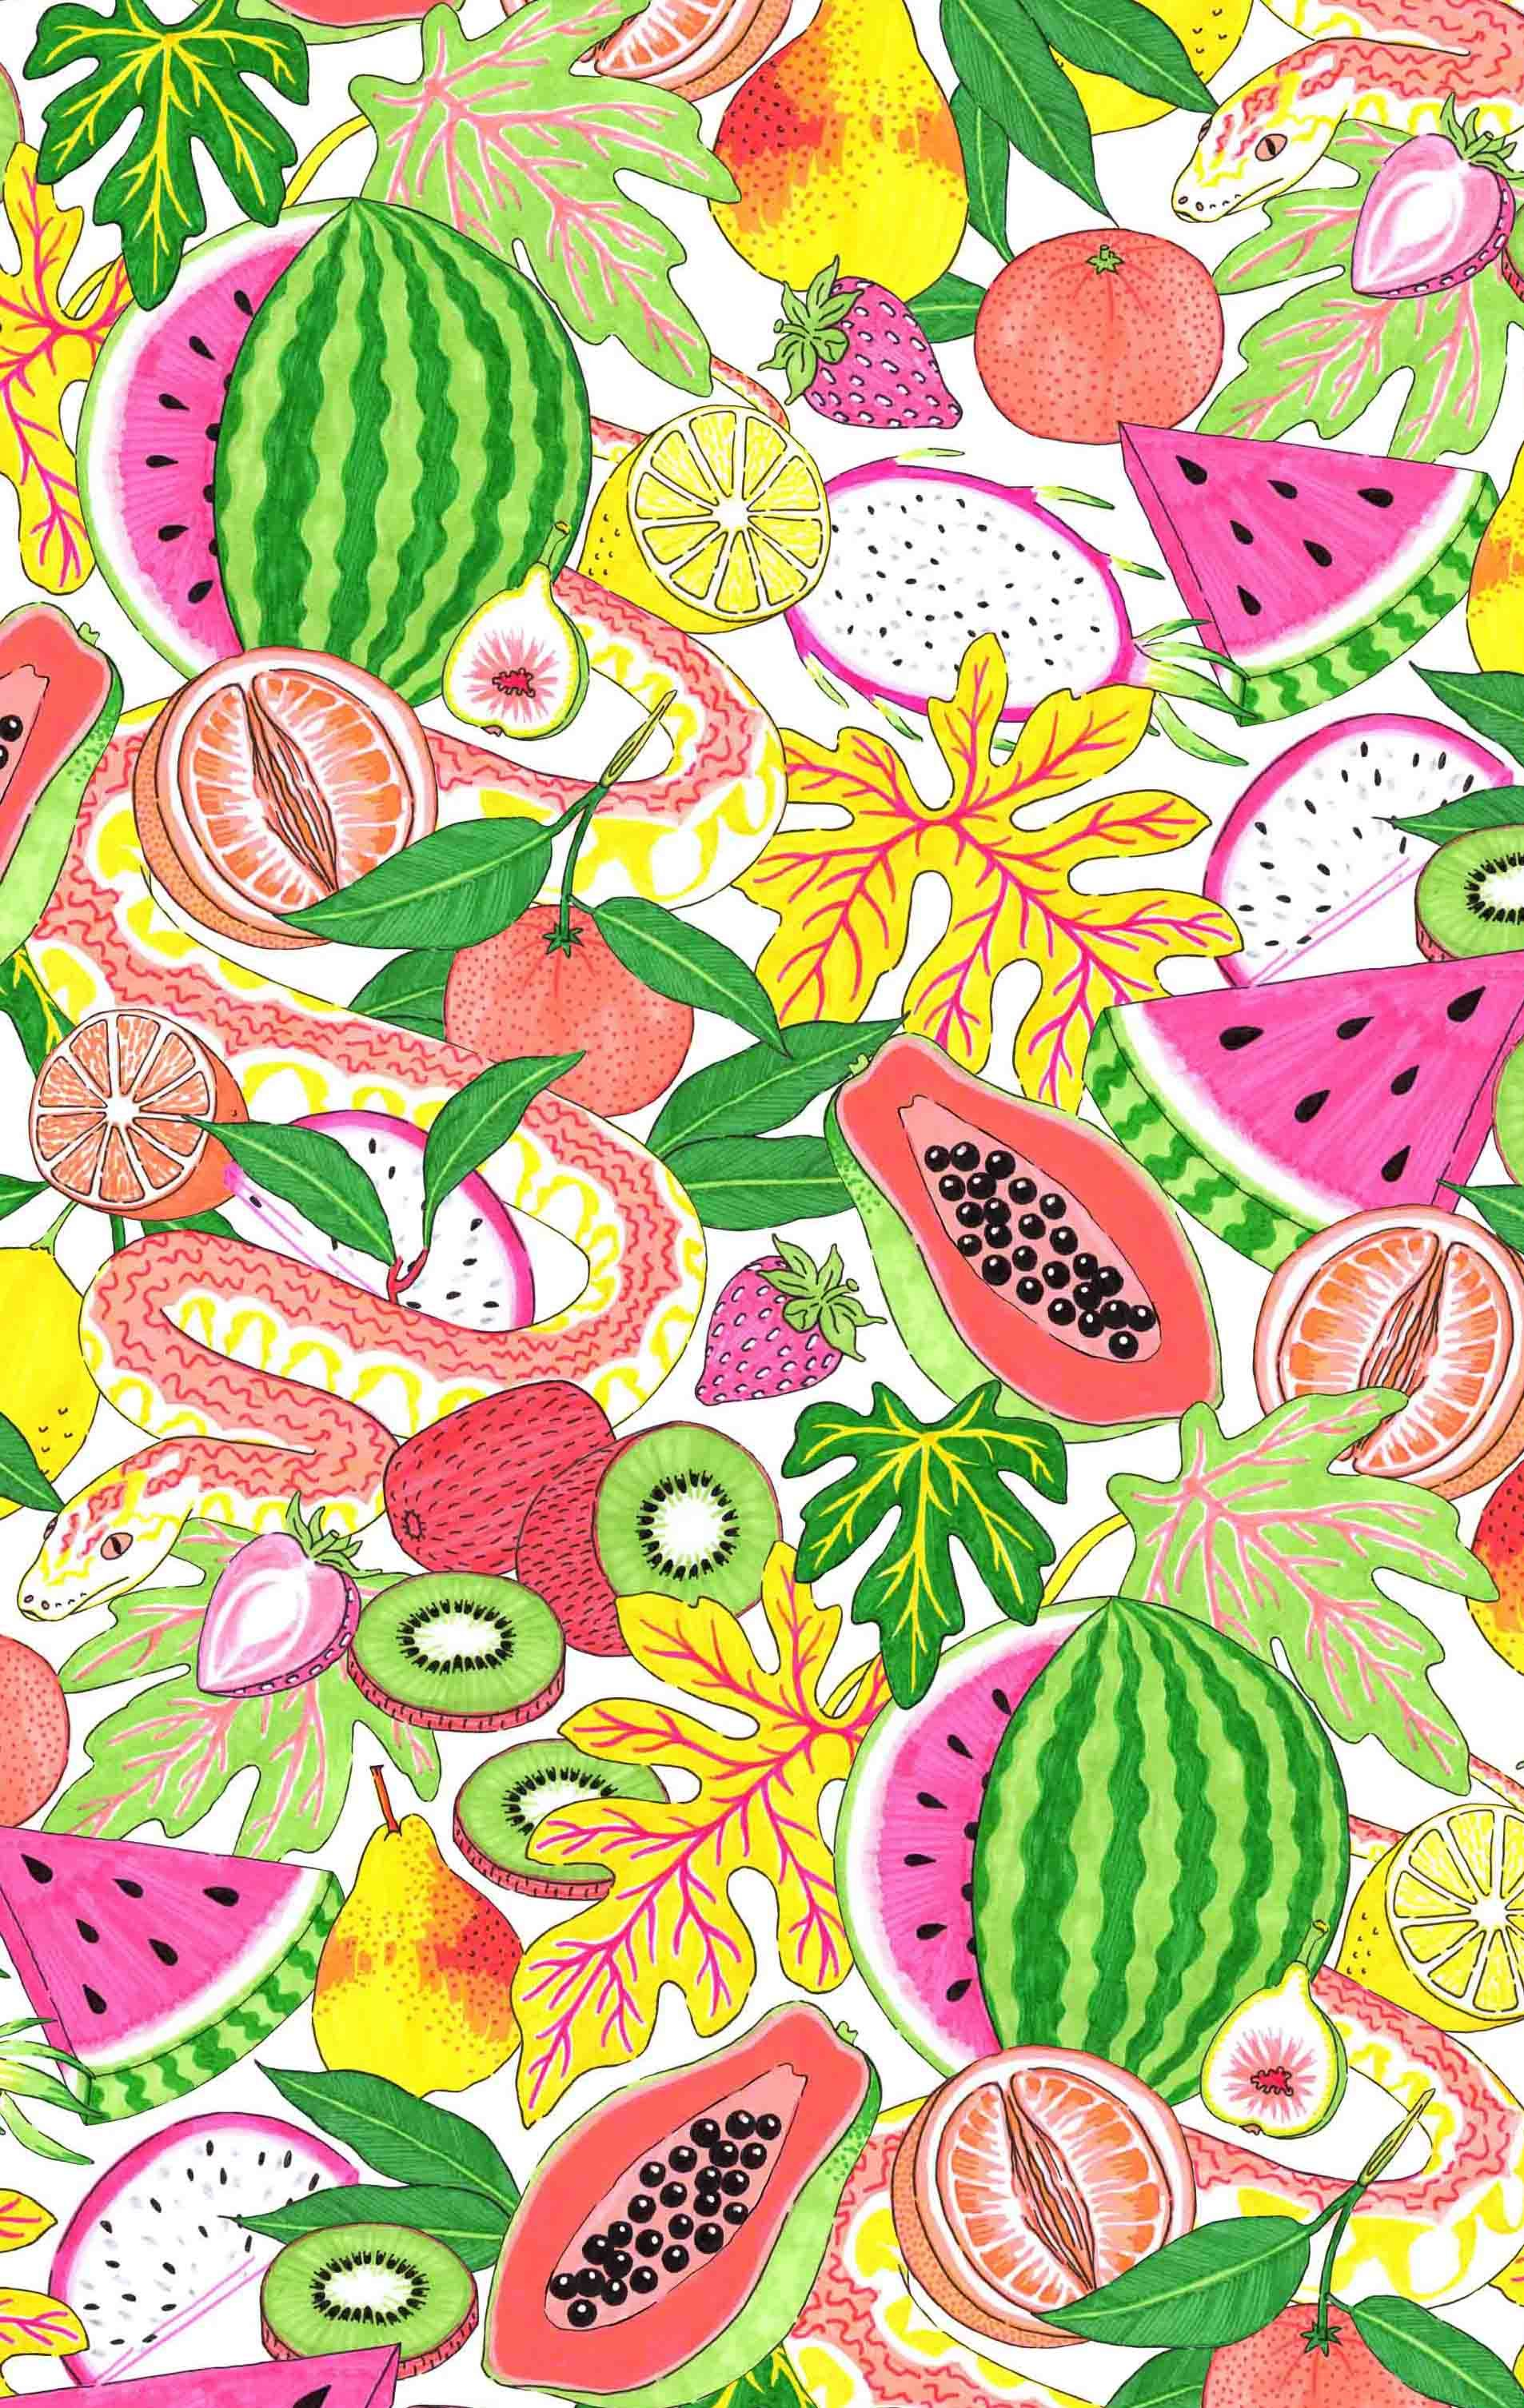 Fruit Salad and snake, tropical fruity illustrations and